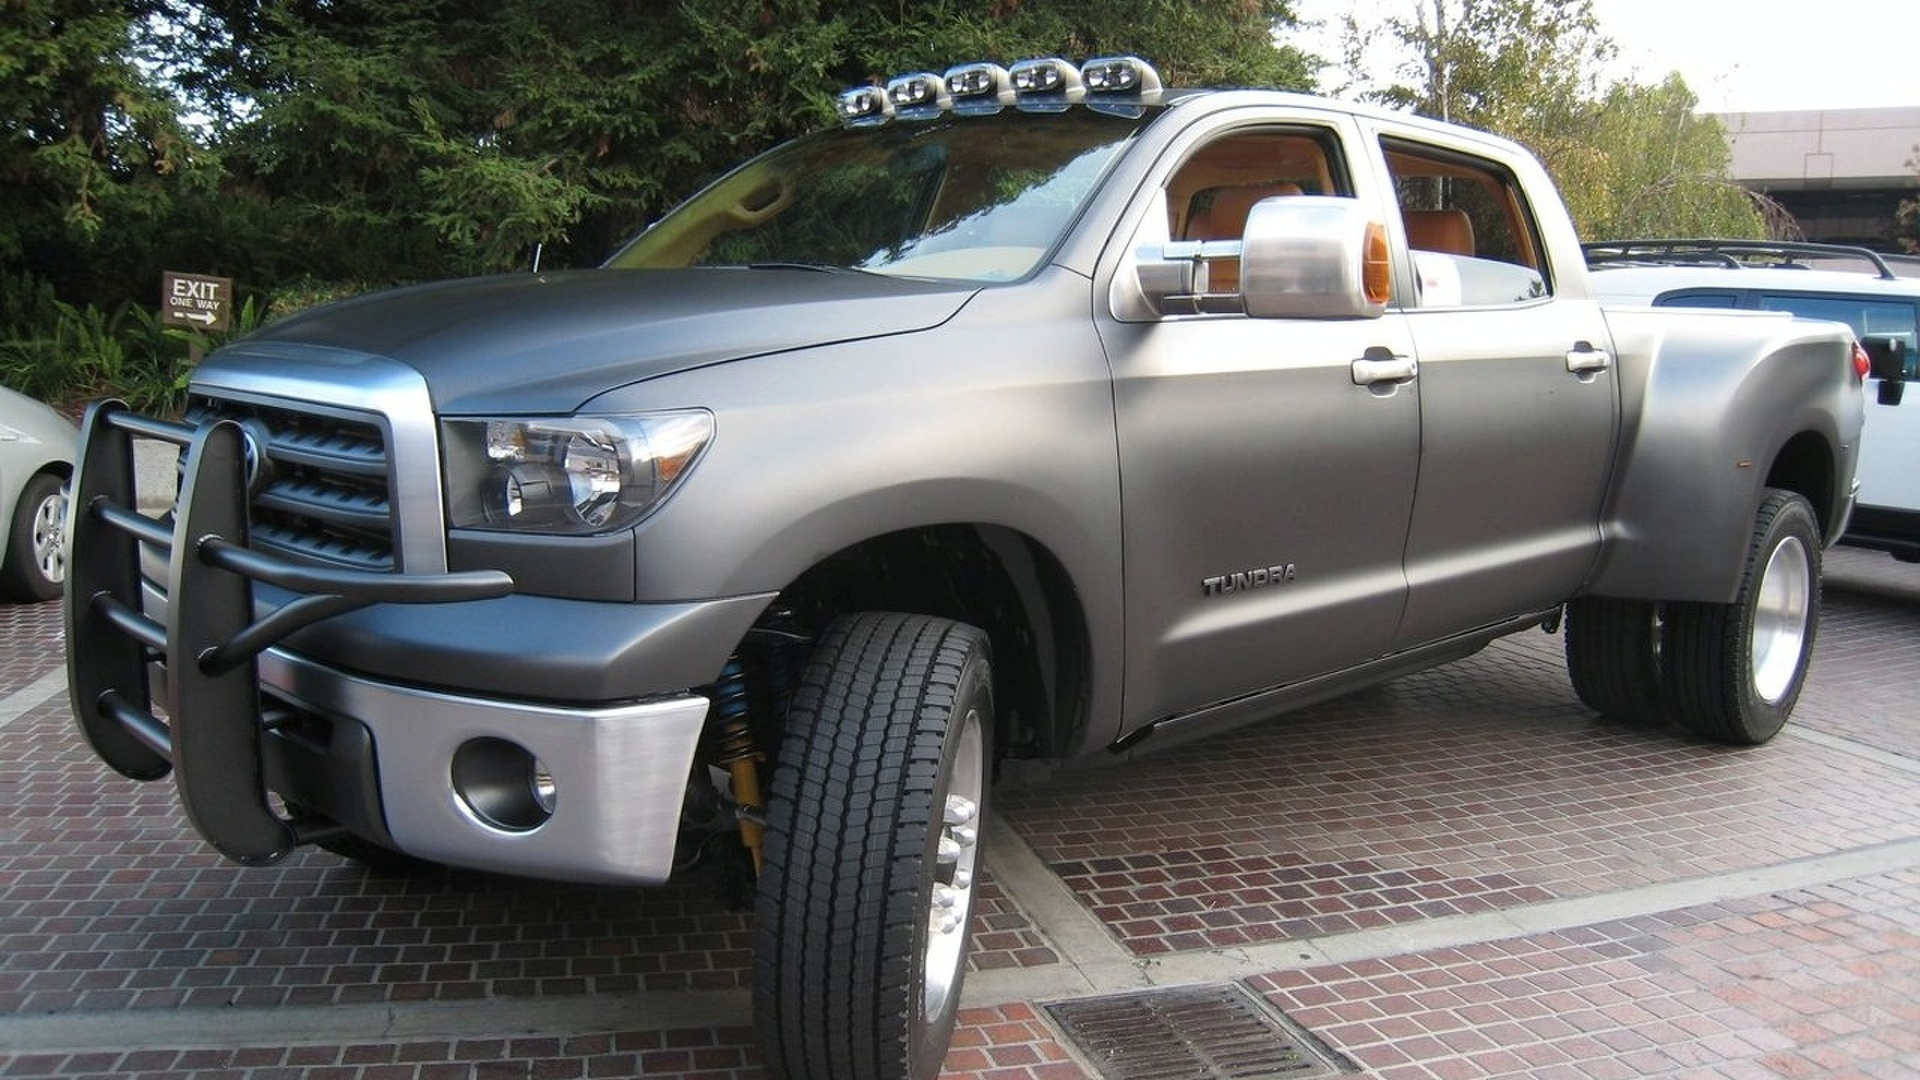 Toyota Tundra Diesel Dually Project Truck at SEMA 2008